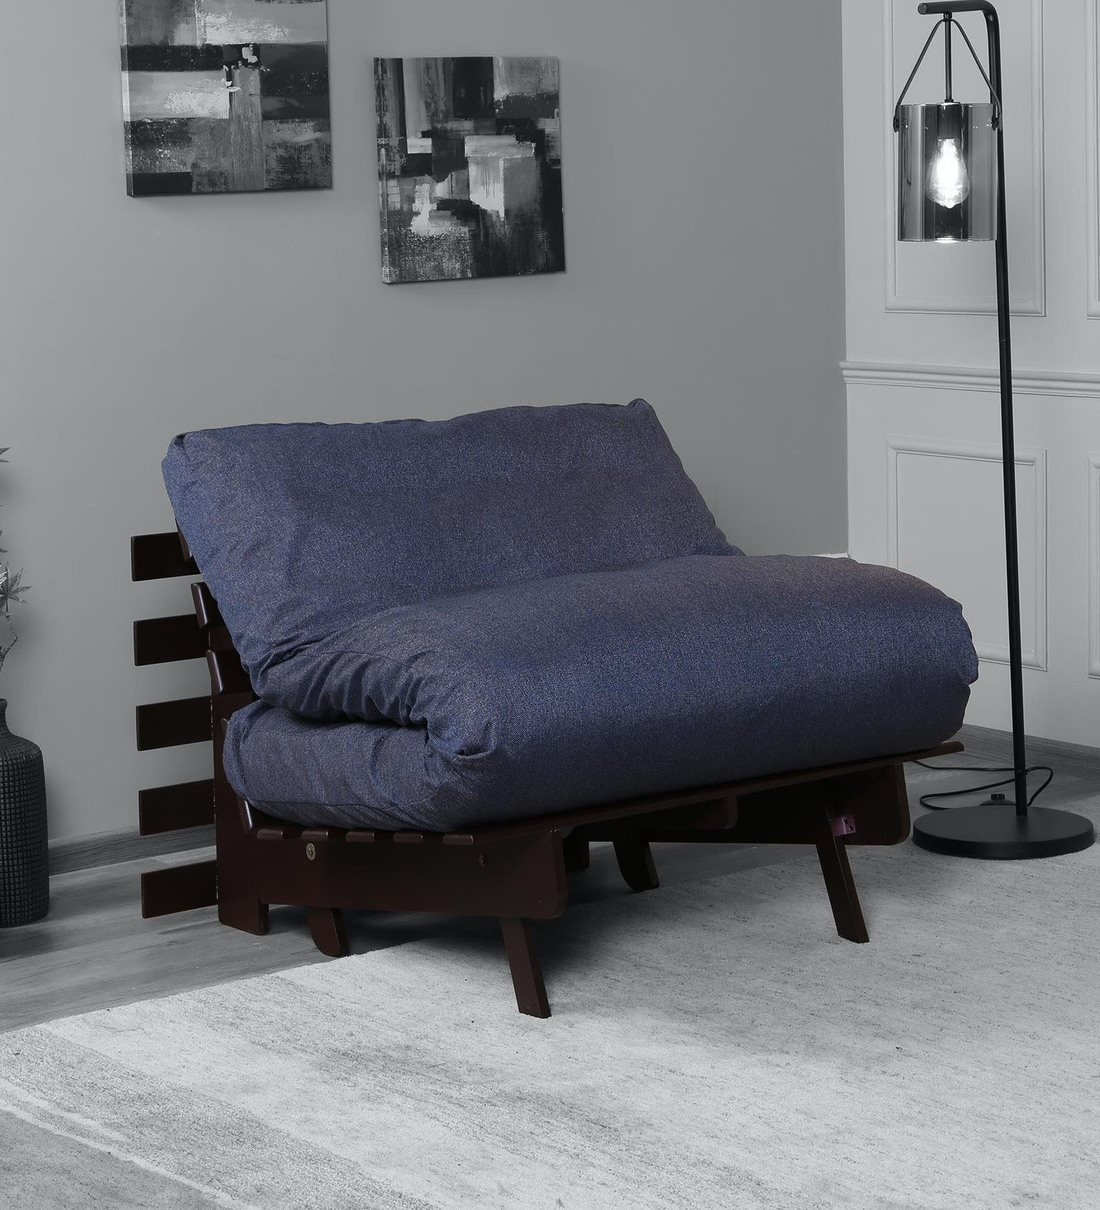 Buy Kobe Single Futon Sofa Cum Bed With Mattress In Spruce Blue Colour Mintwud By Pepperfry Online Single Futons Futons Furniture Pepperfry Product